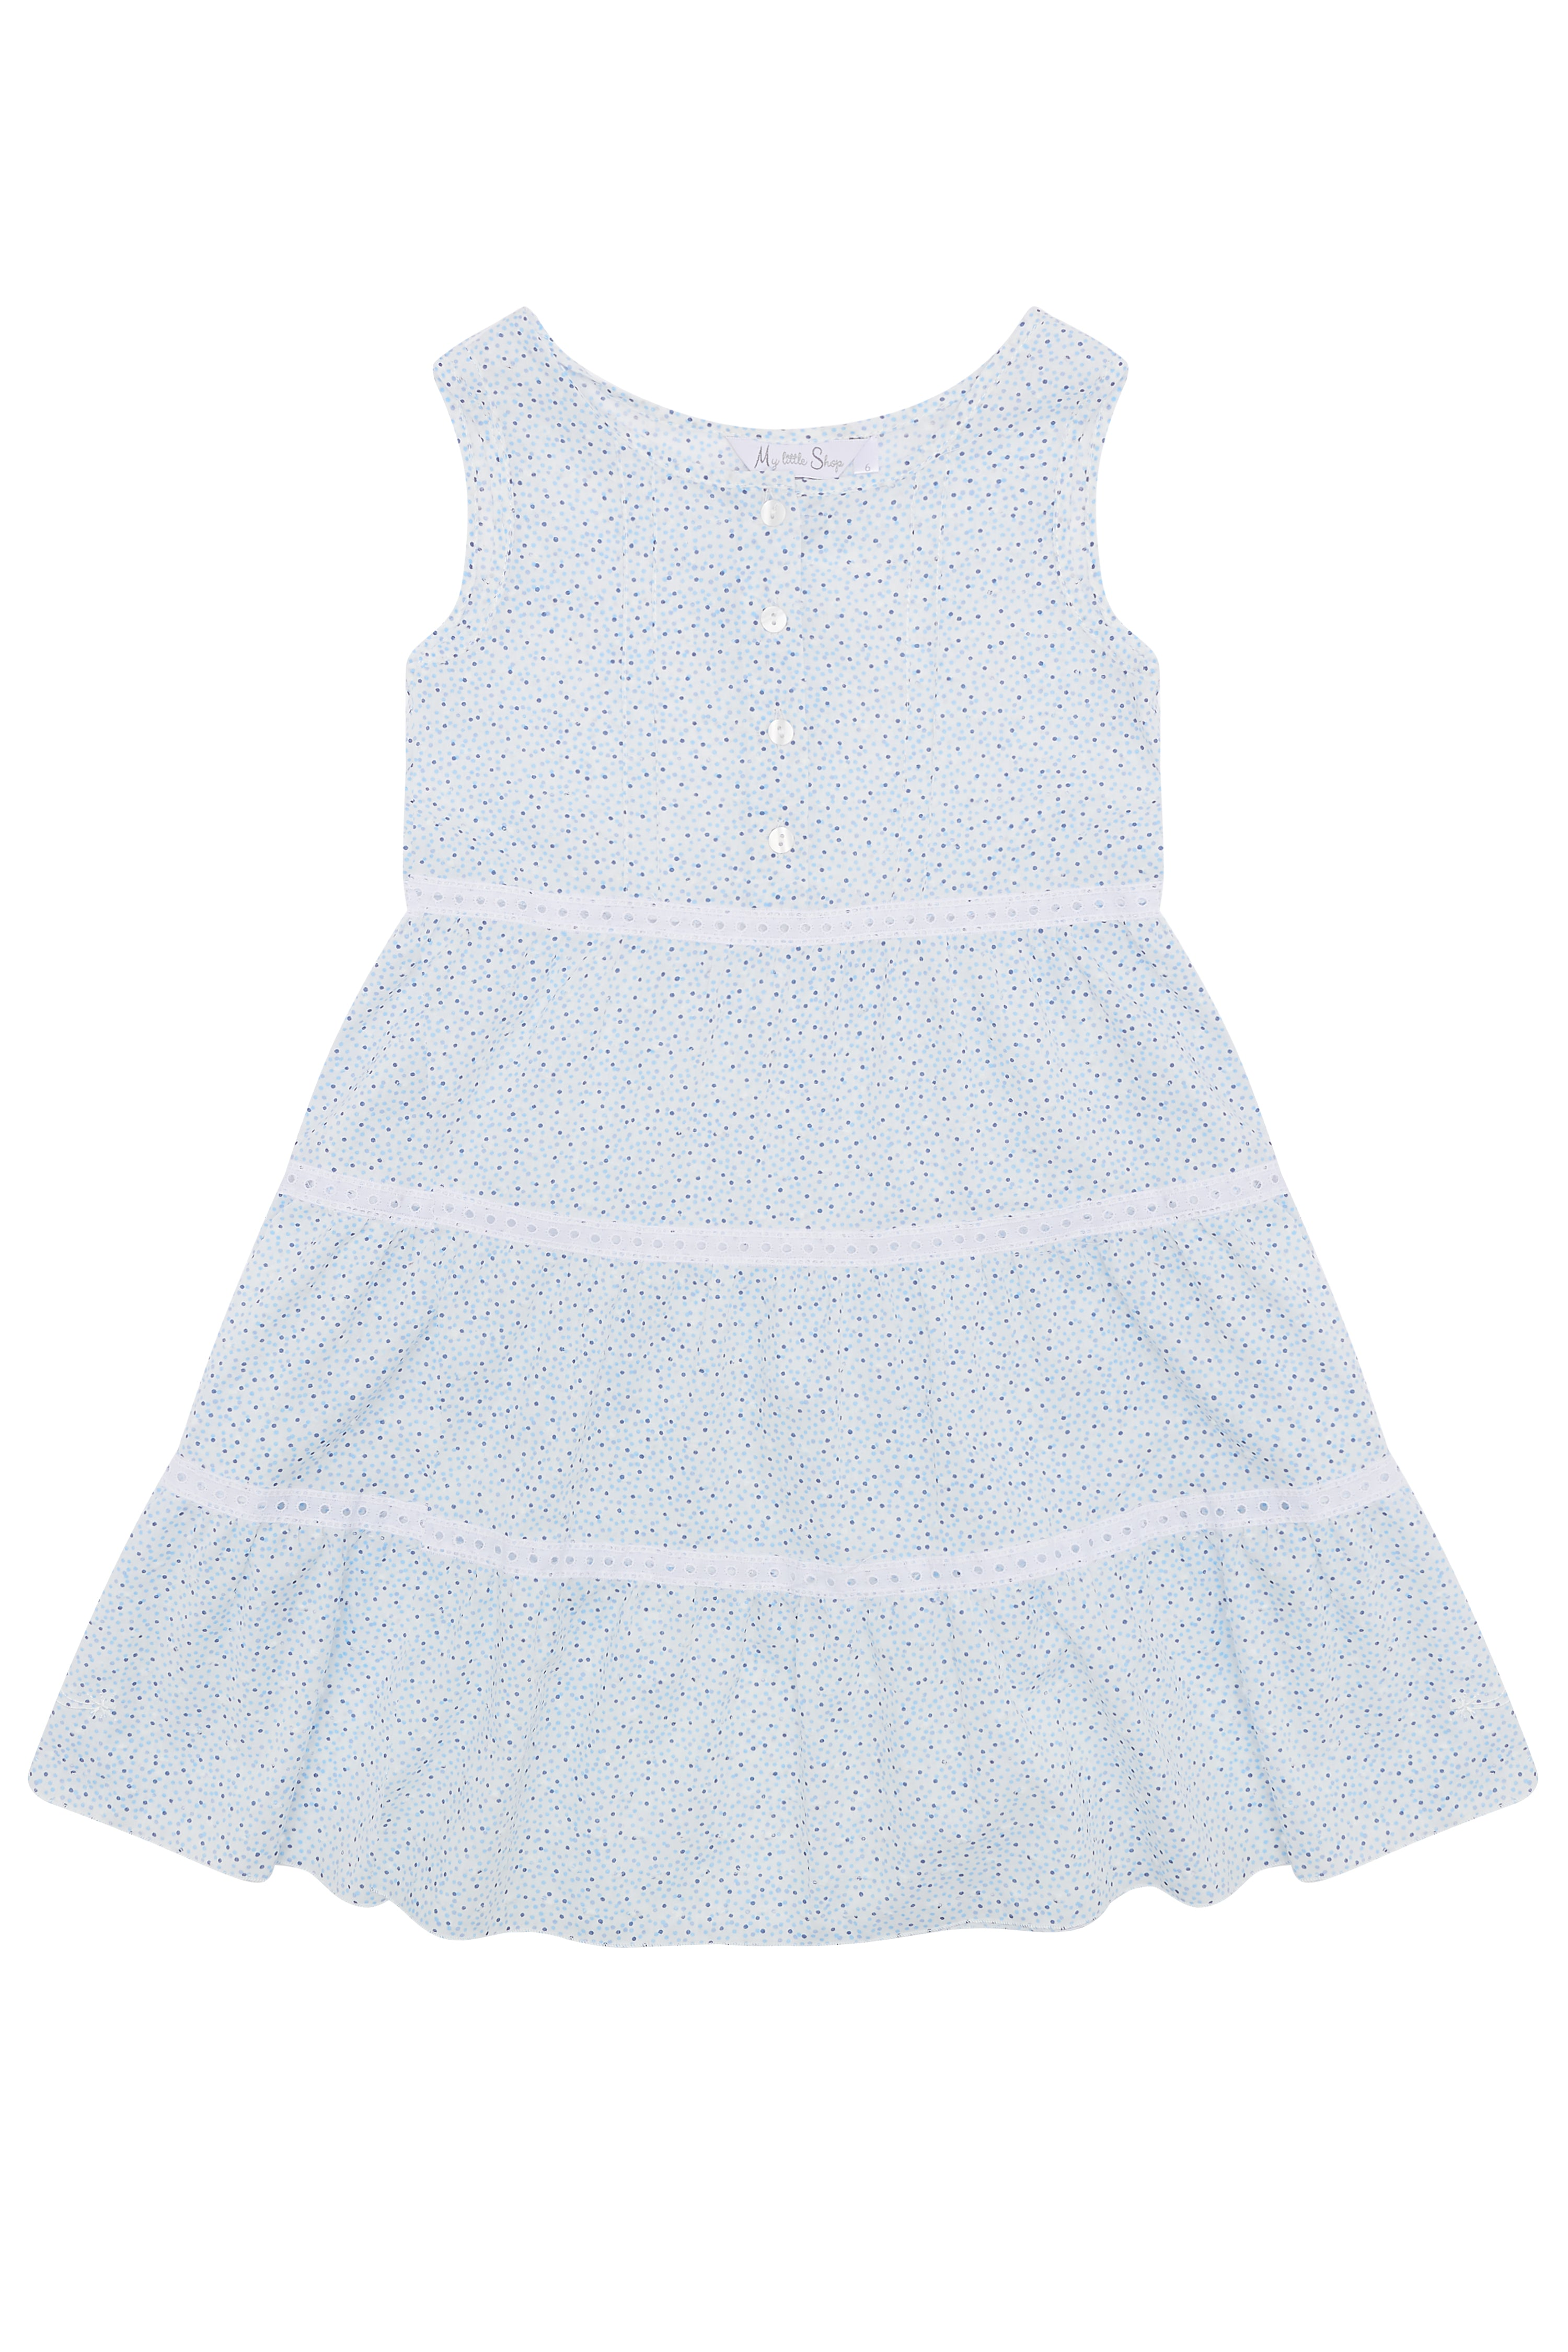 Angie Girls Night Dress